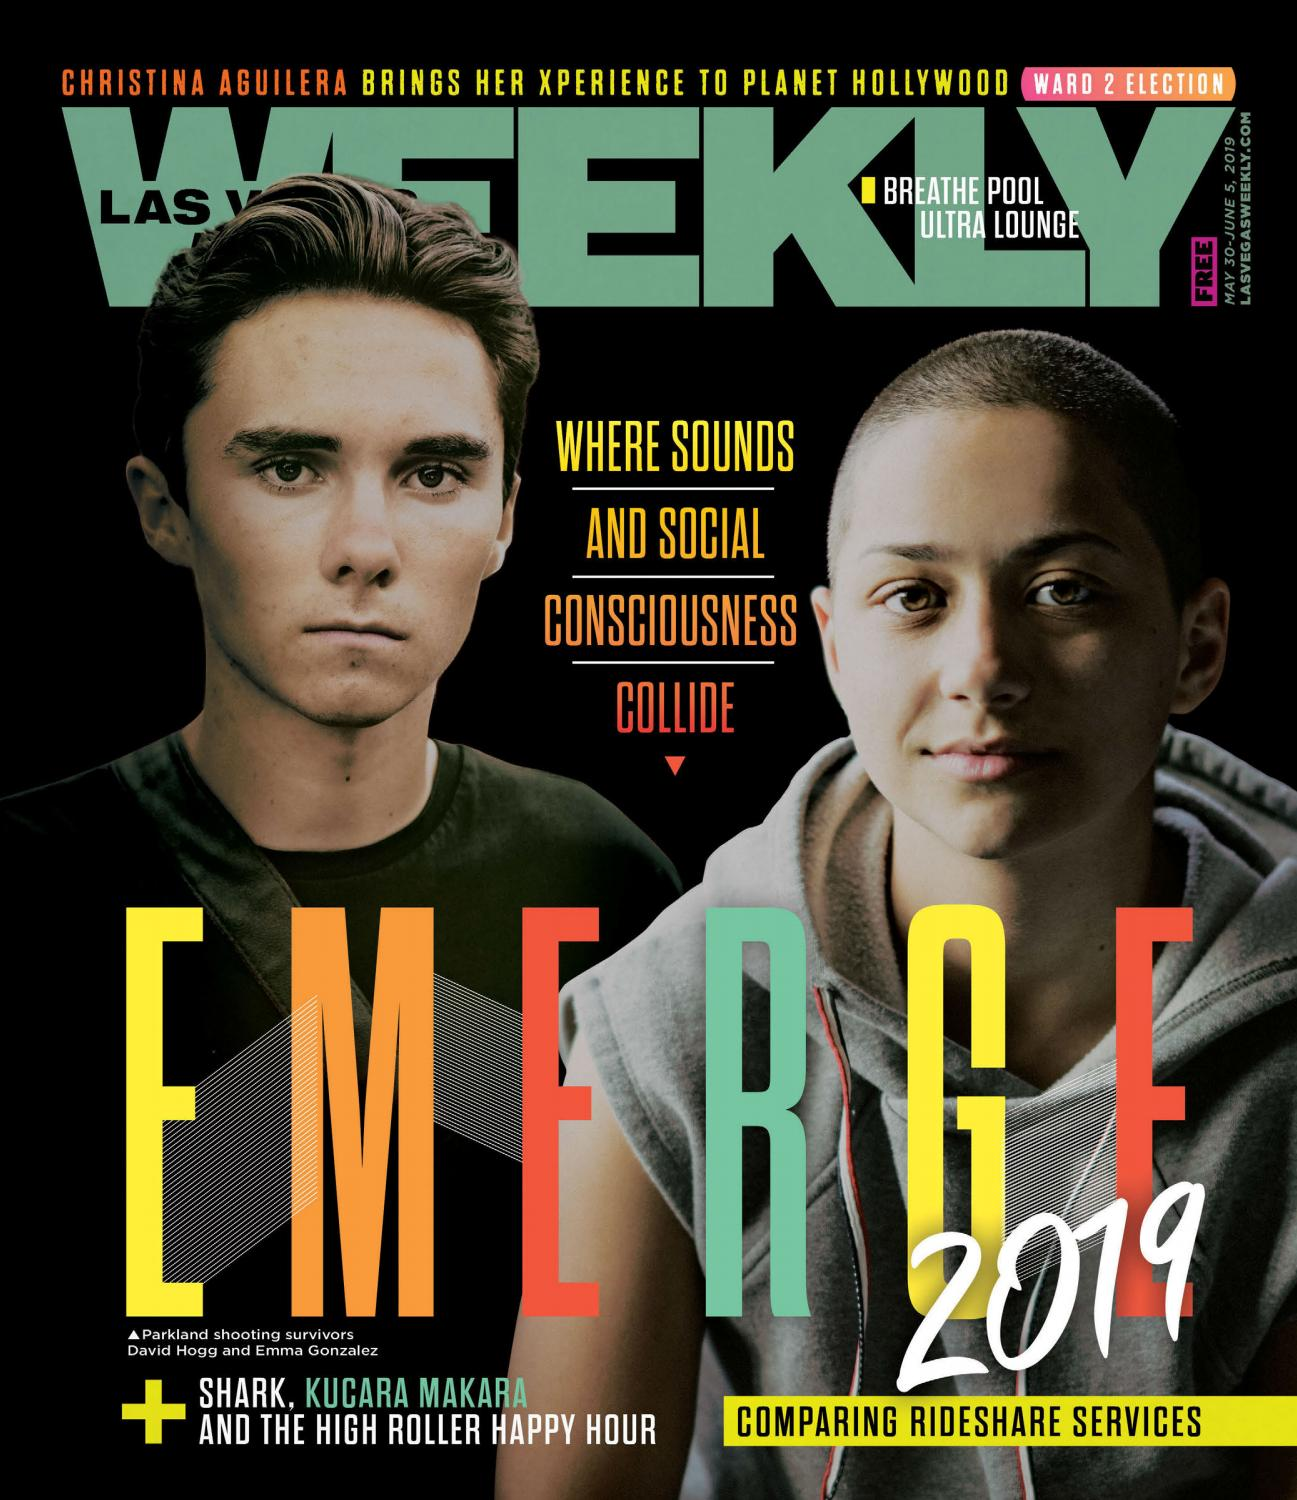 2019-05-30 - Las Vegas Weekly by Greenspun Media Group - issuu